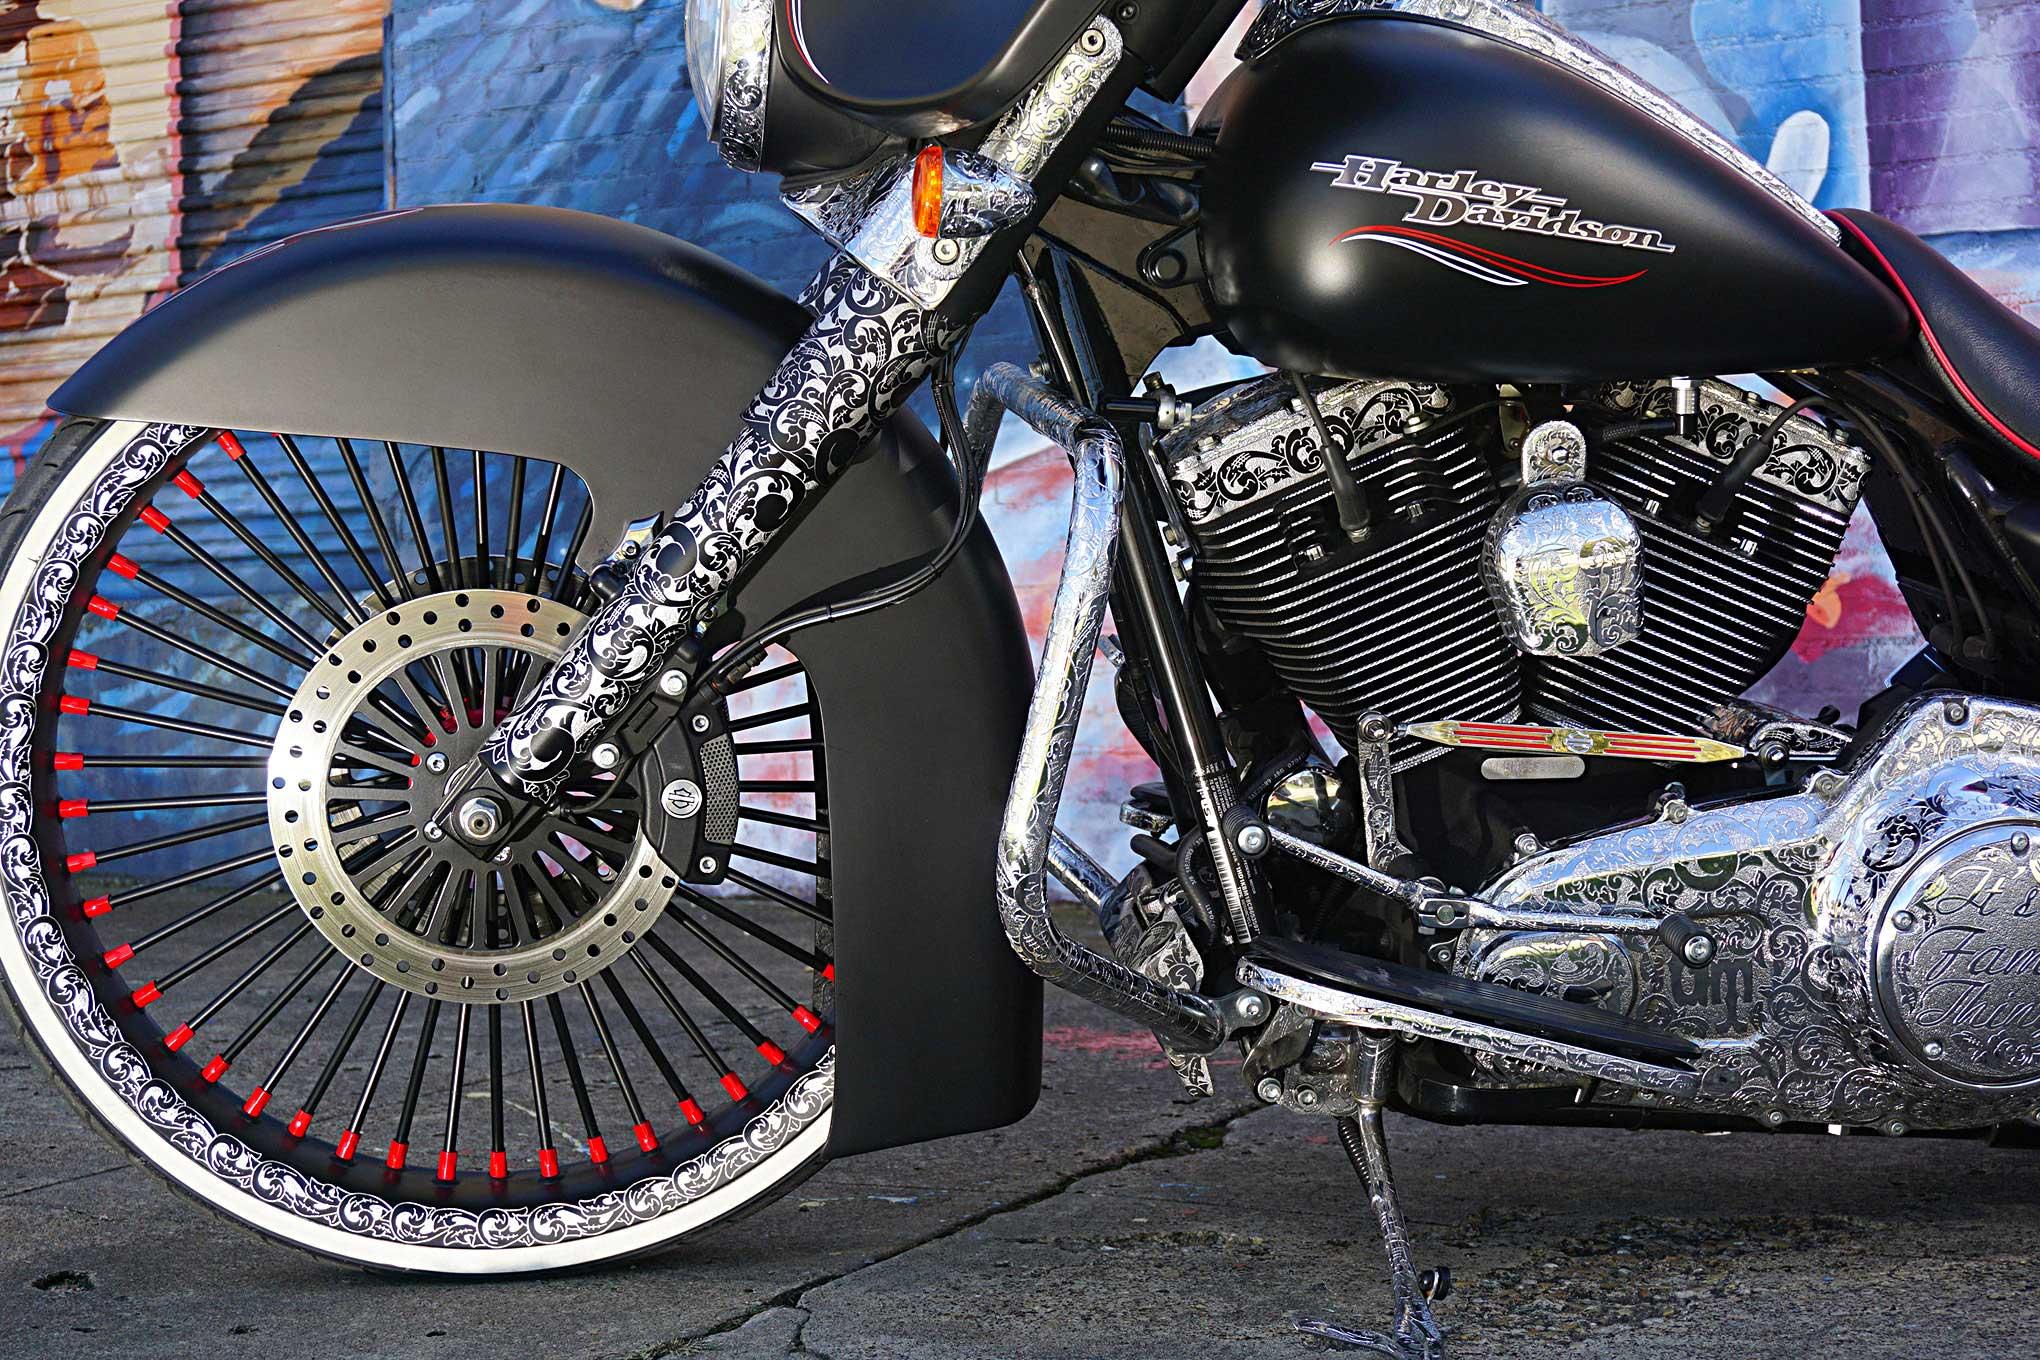 2012 Harley Davidson Street Glide Front Fork Lowrider About This Editor